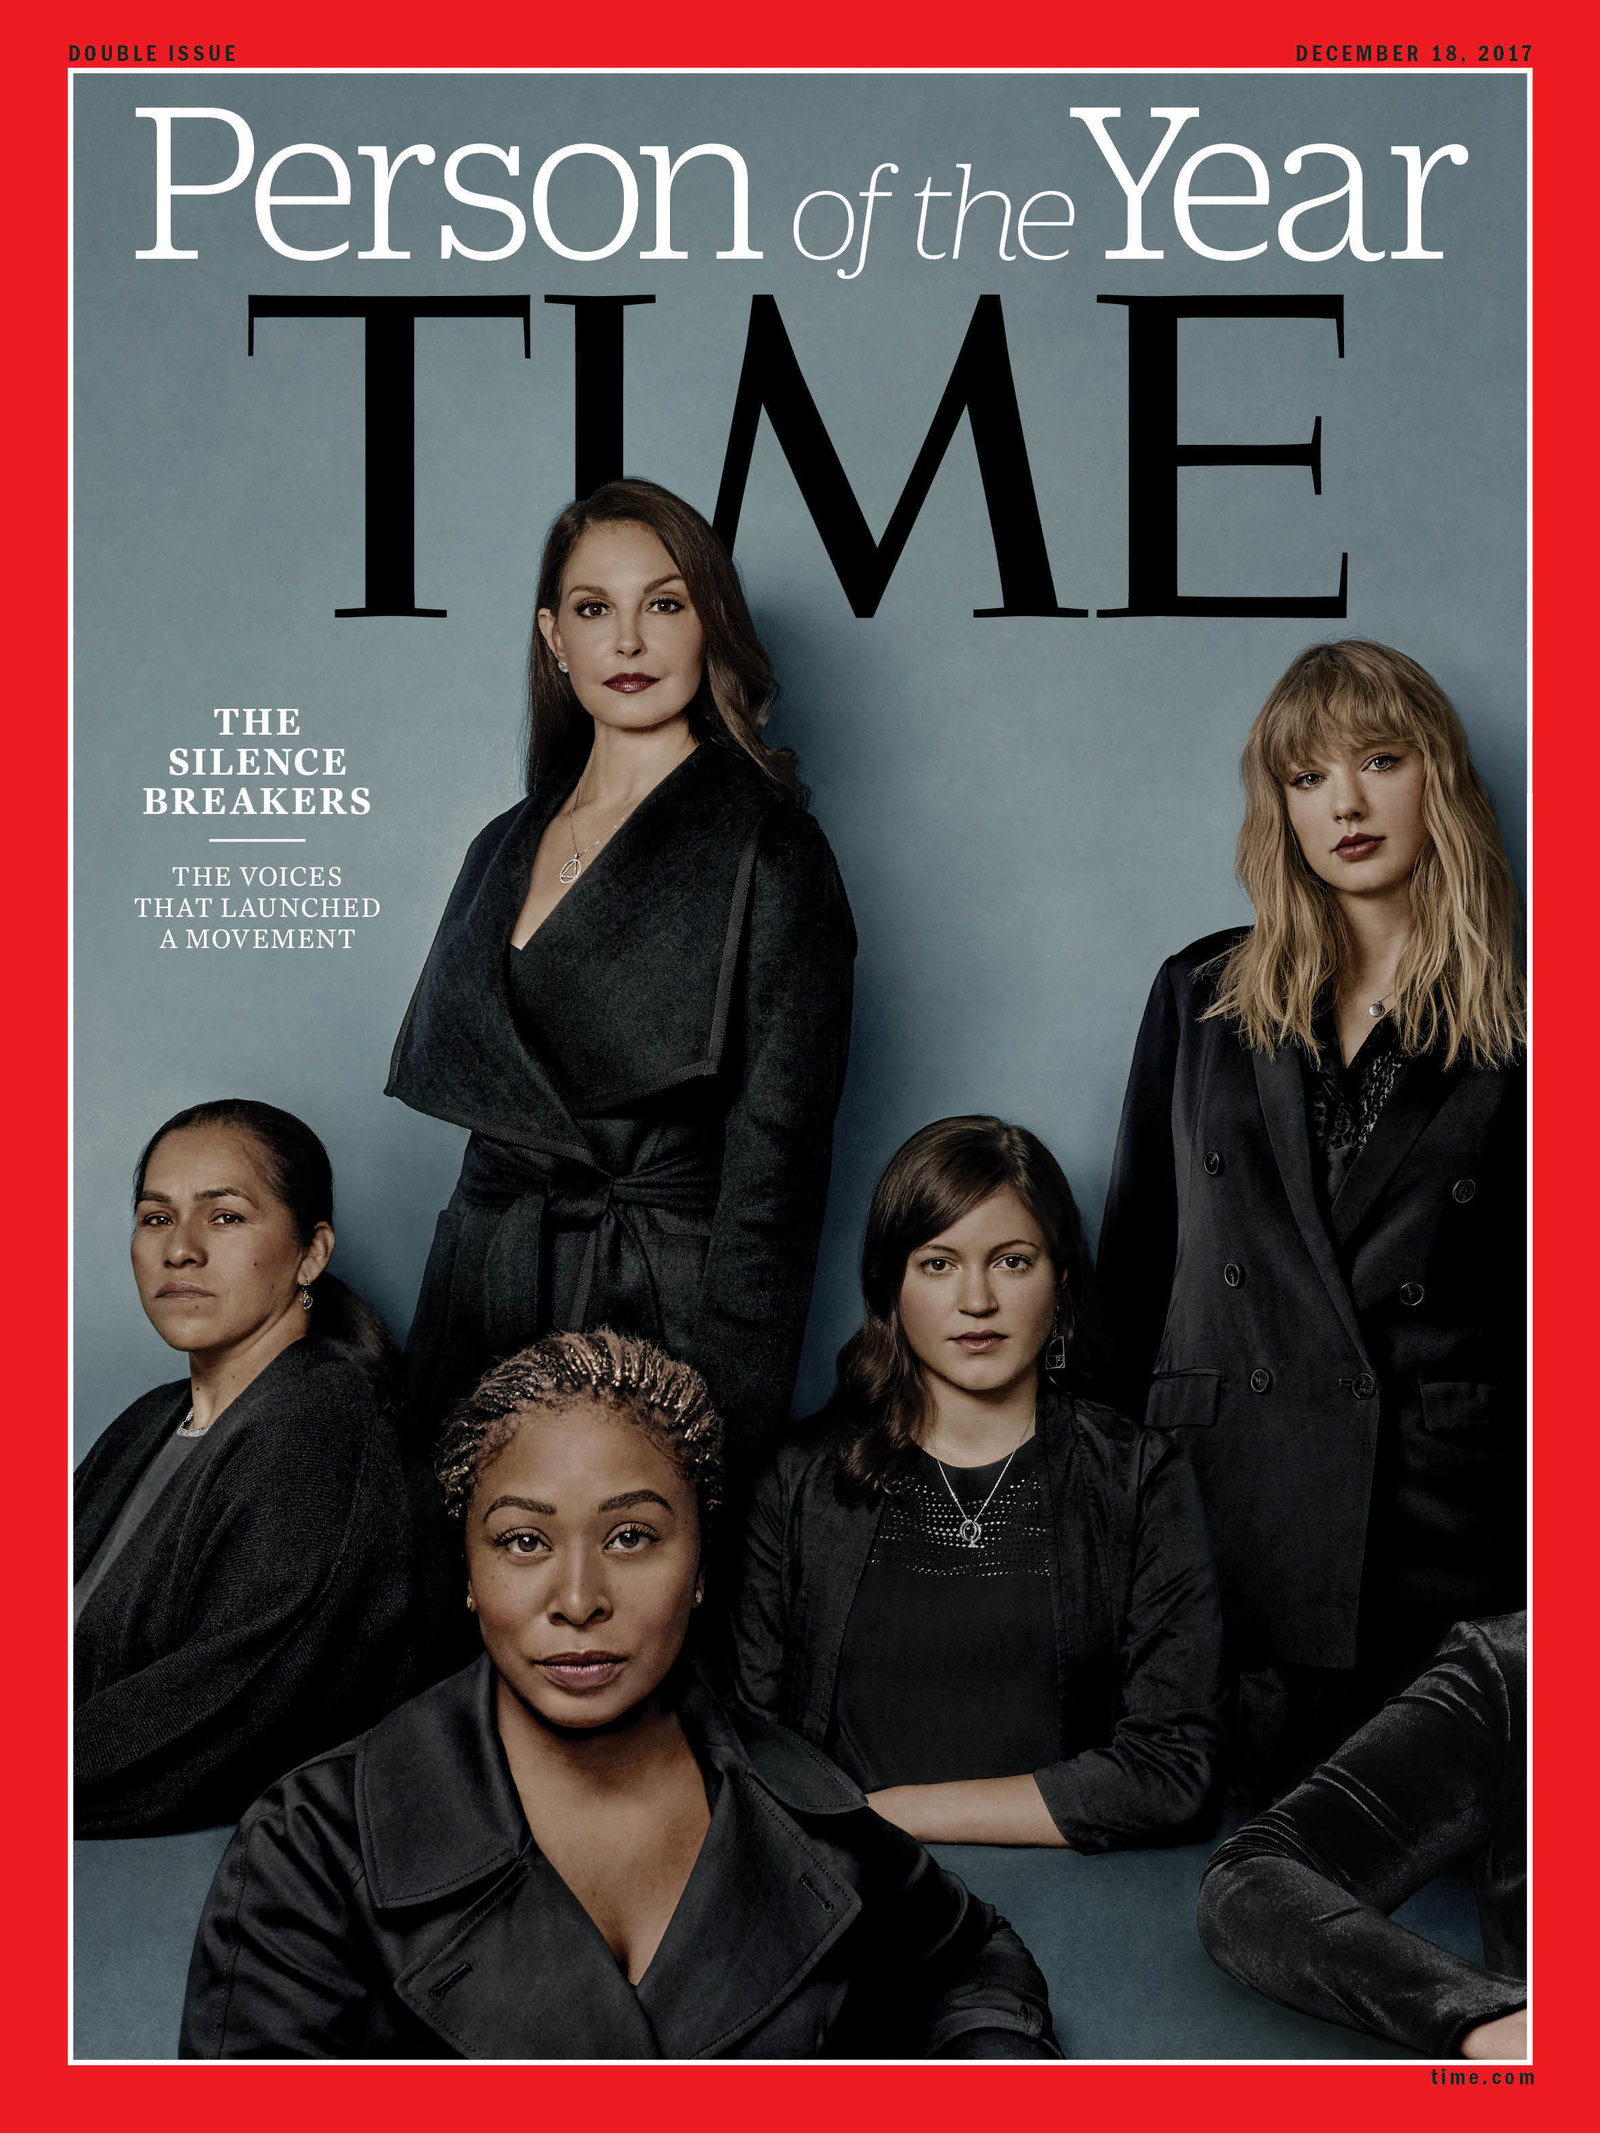 The Silence Breakers